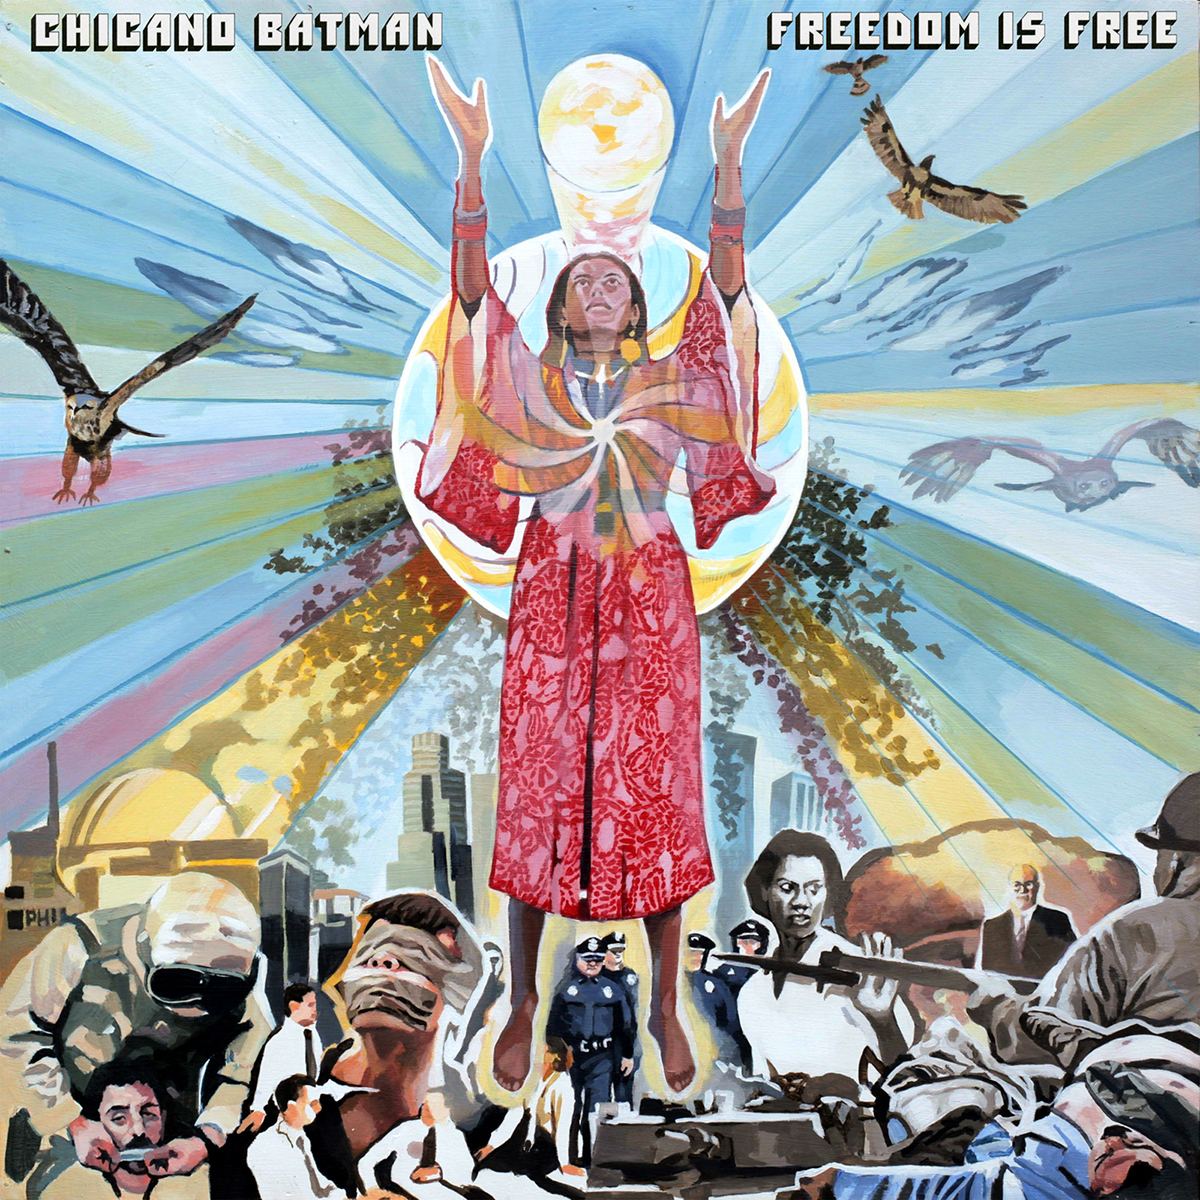 Chicano Batman - Freedom Is Free Digital Album